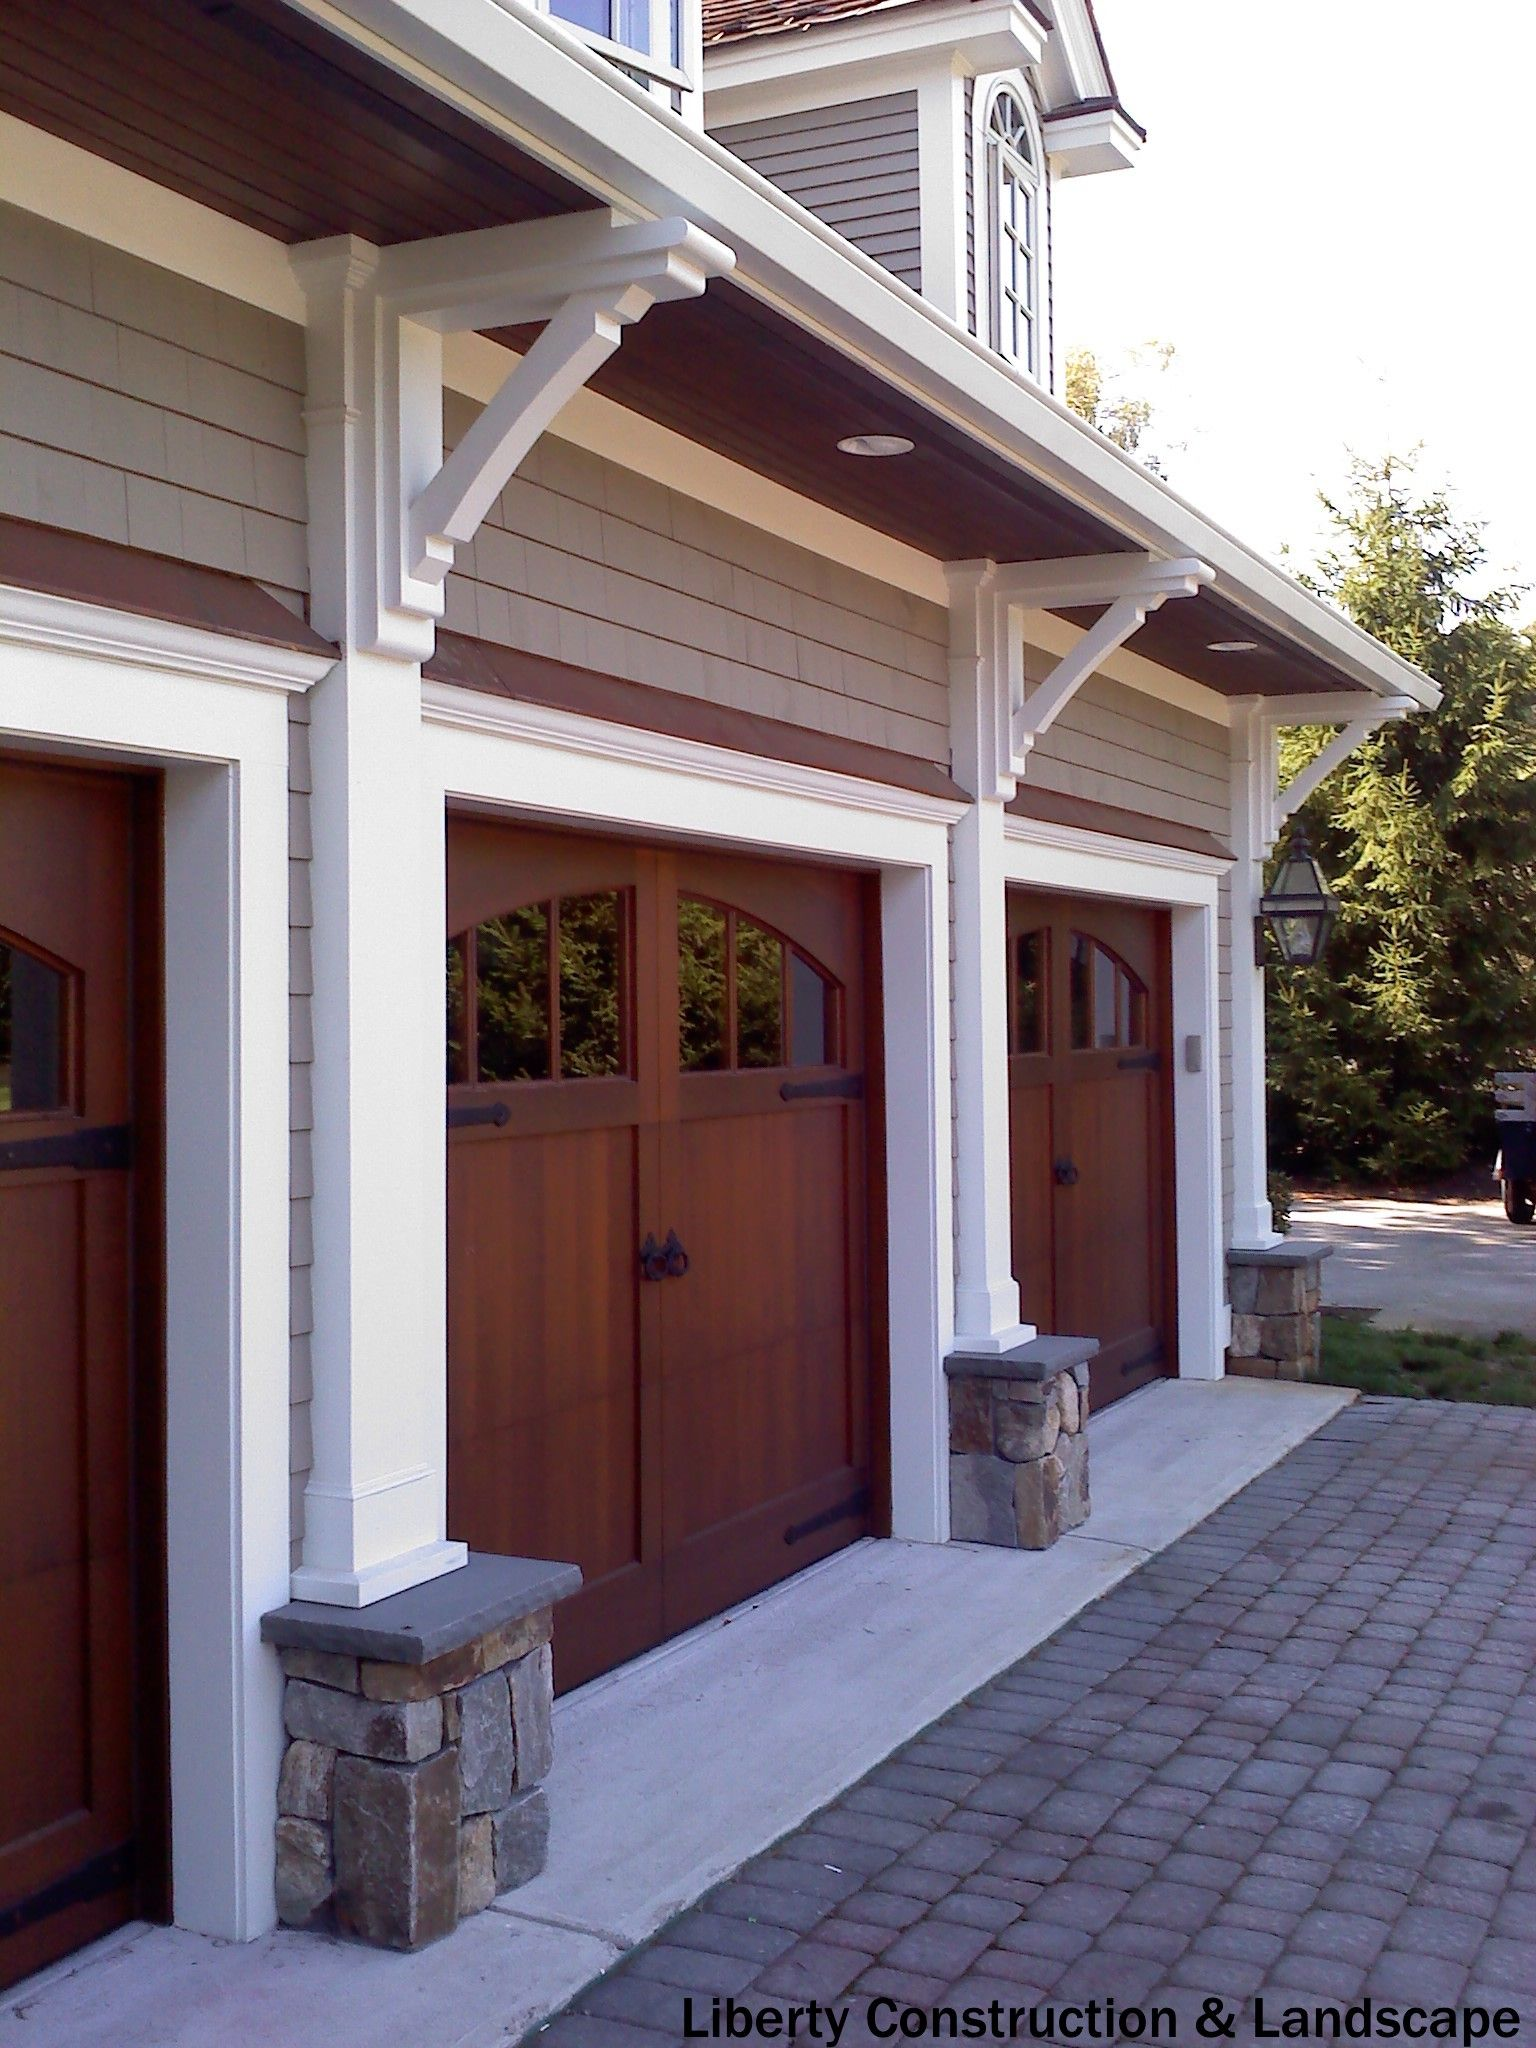 Rustic 3 Car Garage With Half Rounded Windows Above The Average